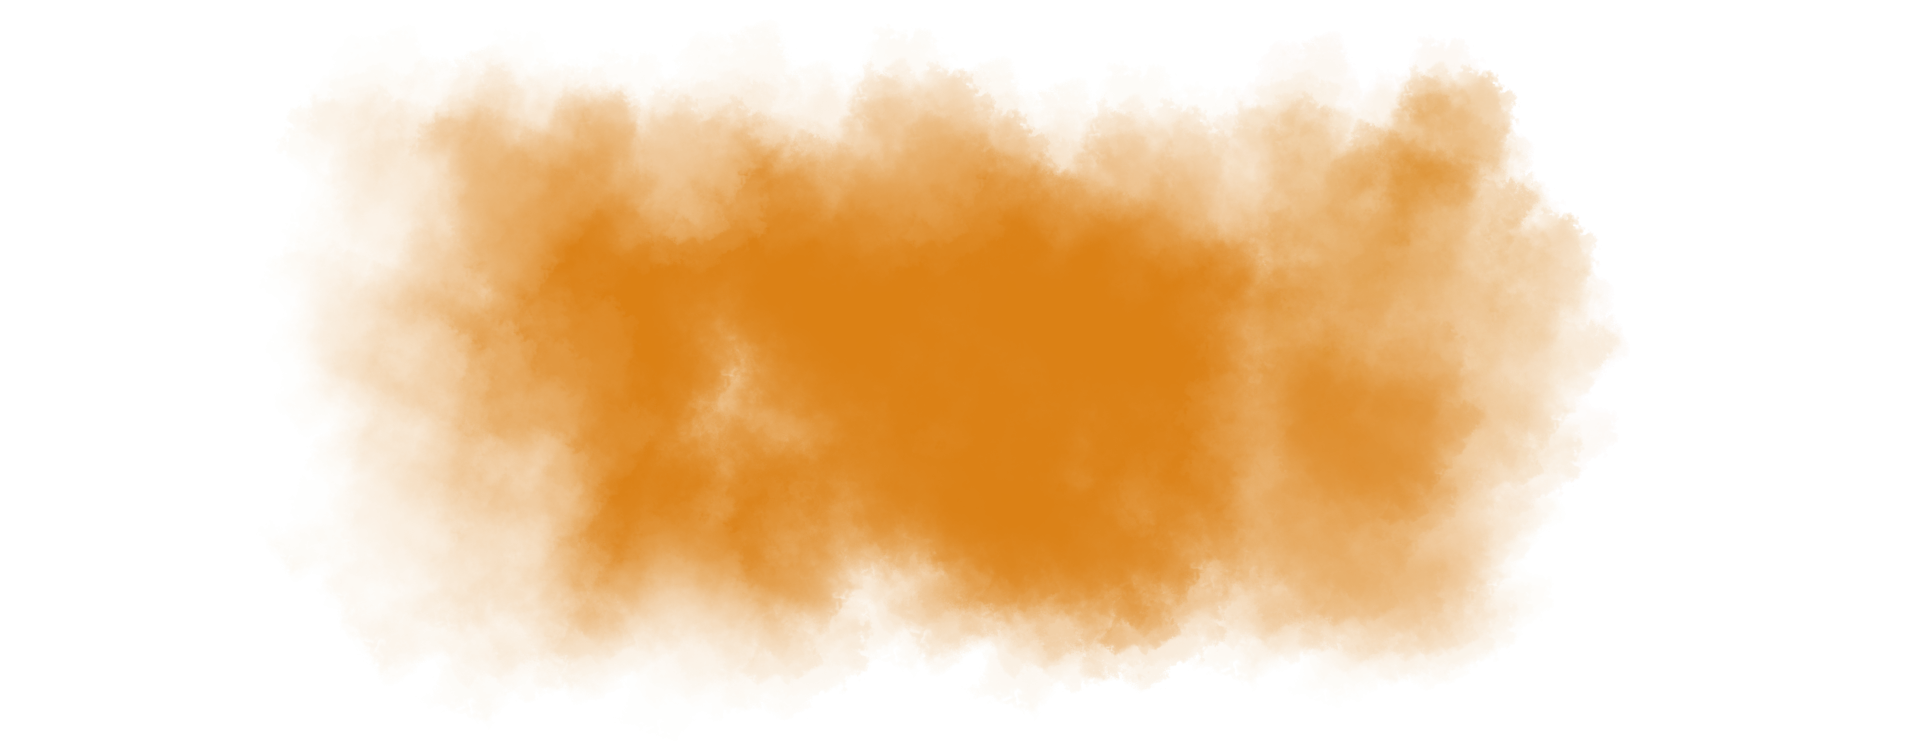 AOCG_G3_CROSSHAIR_BACKGROUND.png